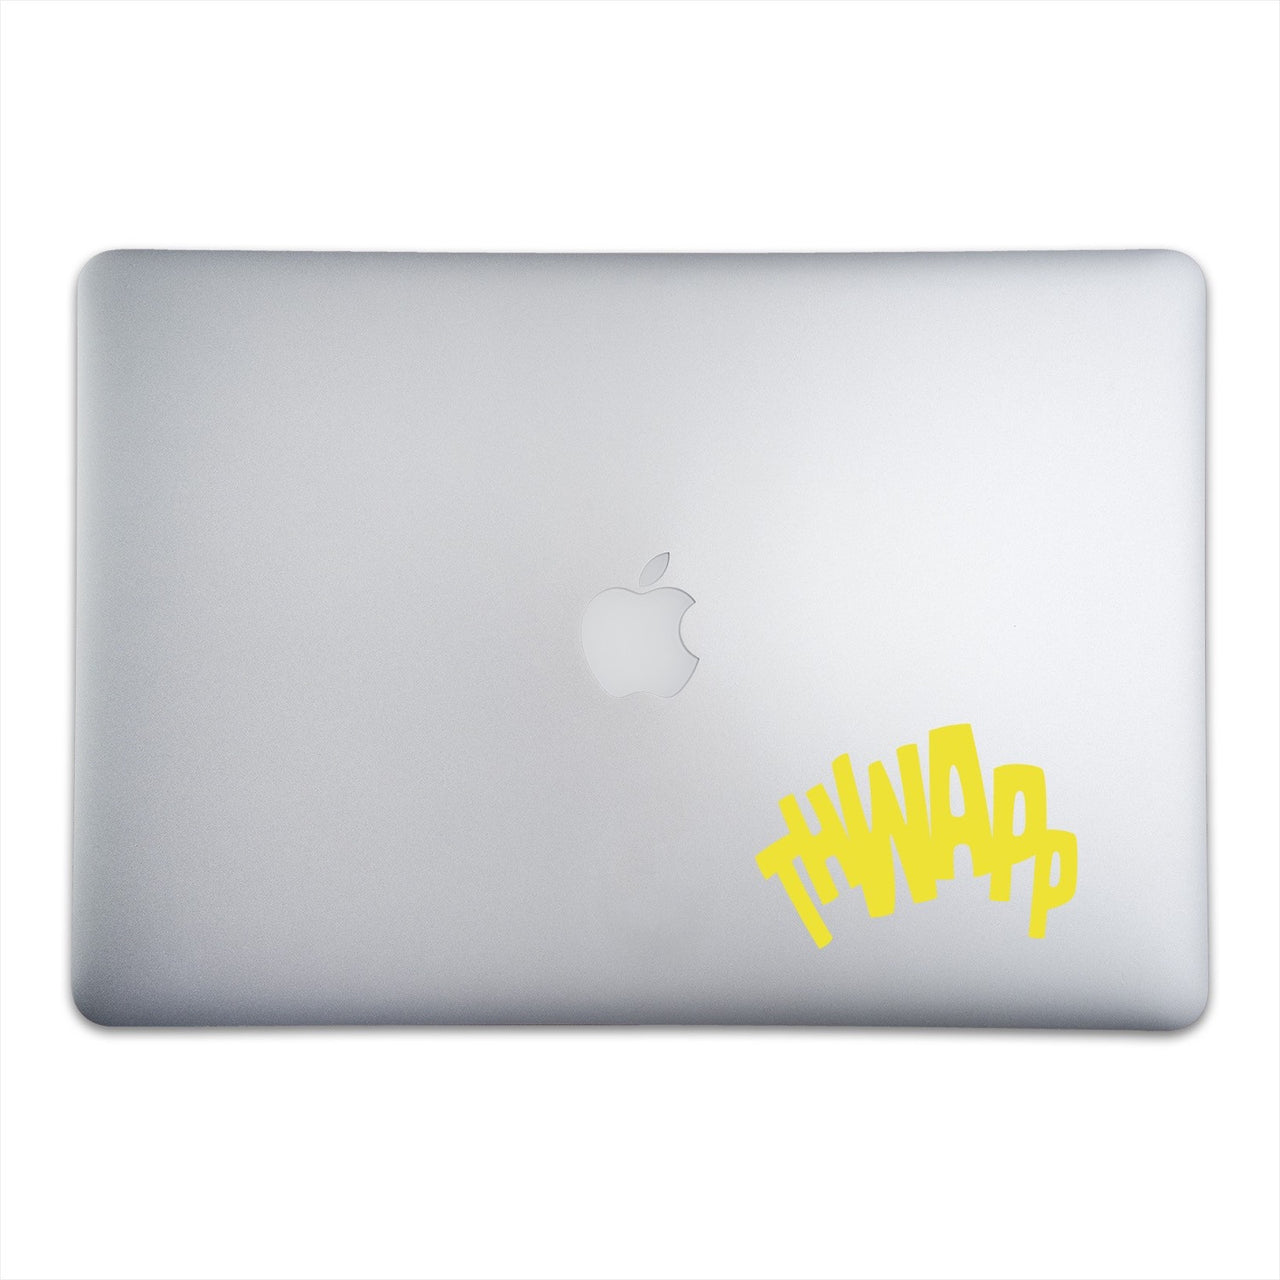 THWAPP Sticker for MacBooks and Apple Devices On A 15-Inch Macbook Pro